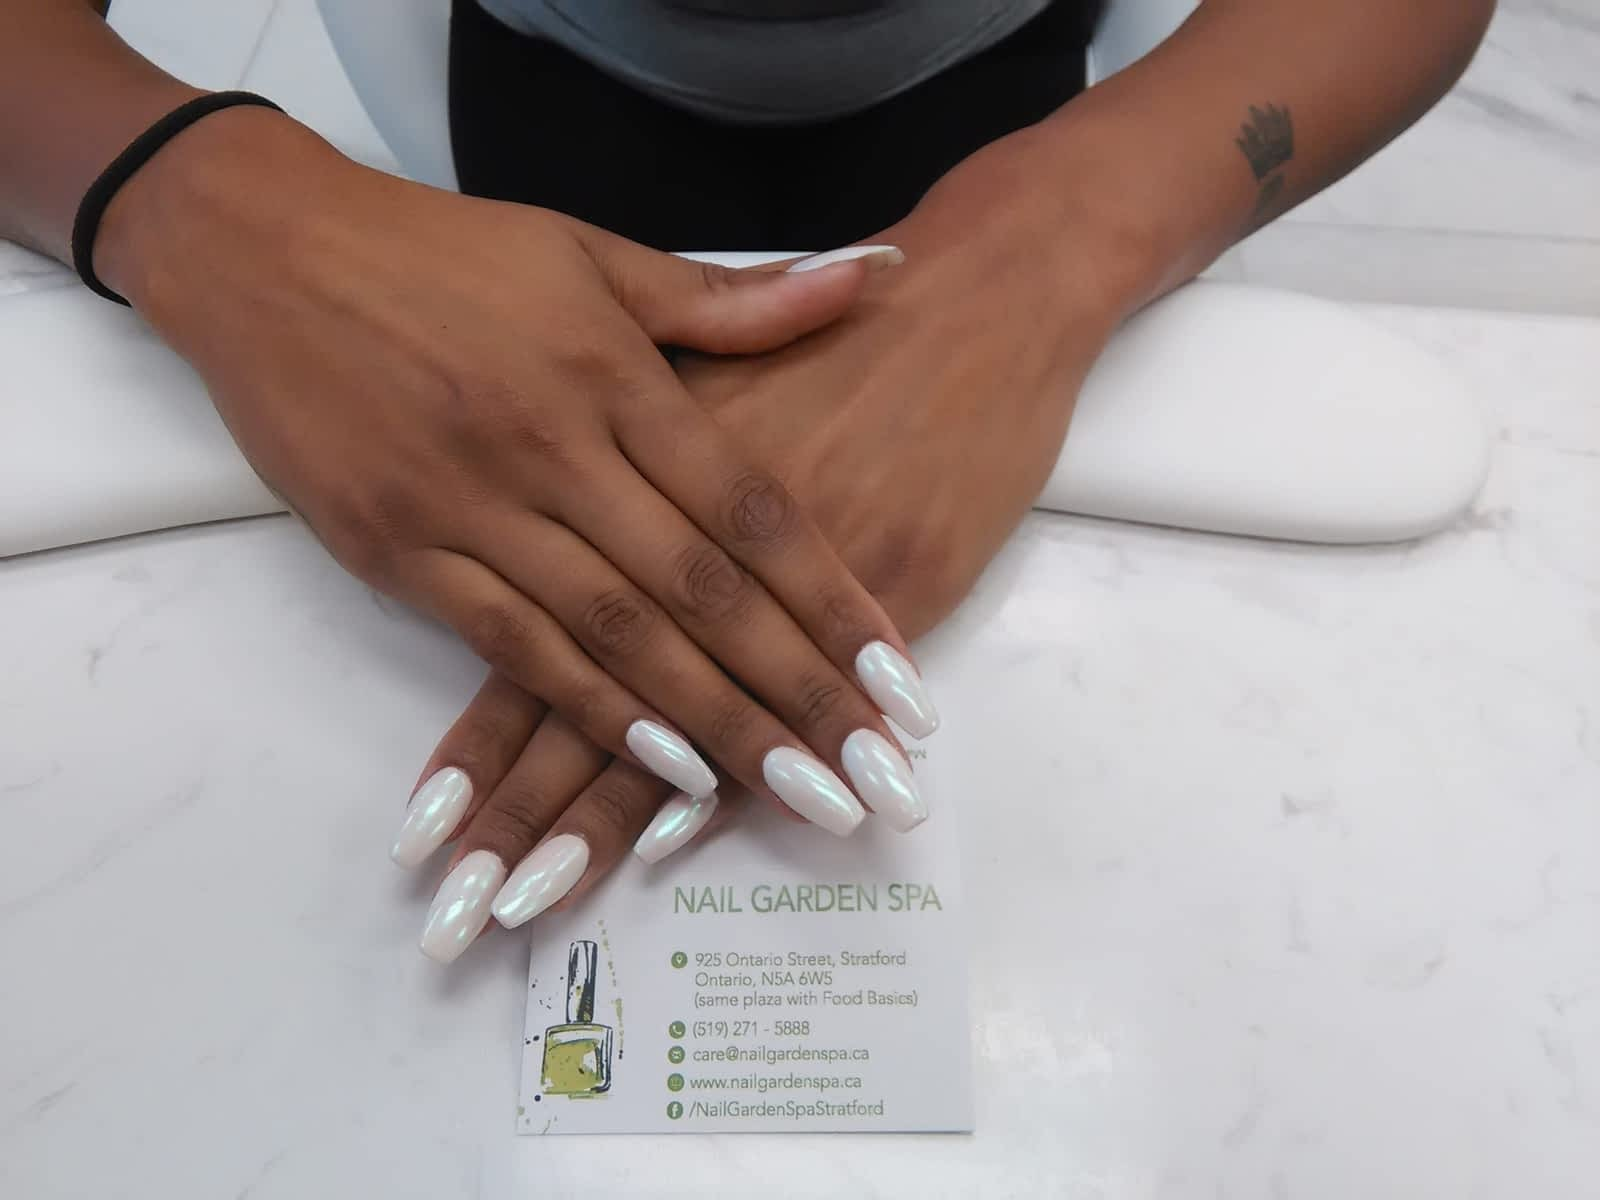 Nail Garden Spa - Opening Hours - 925 Ontario St, Stratford, ON